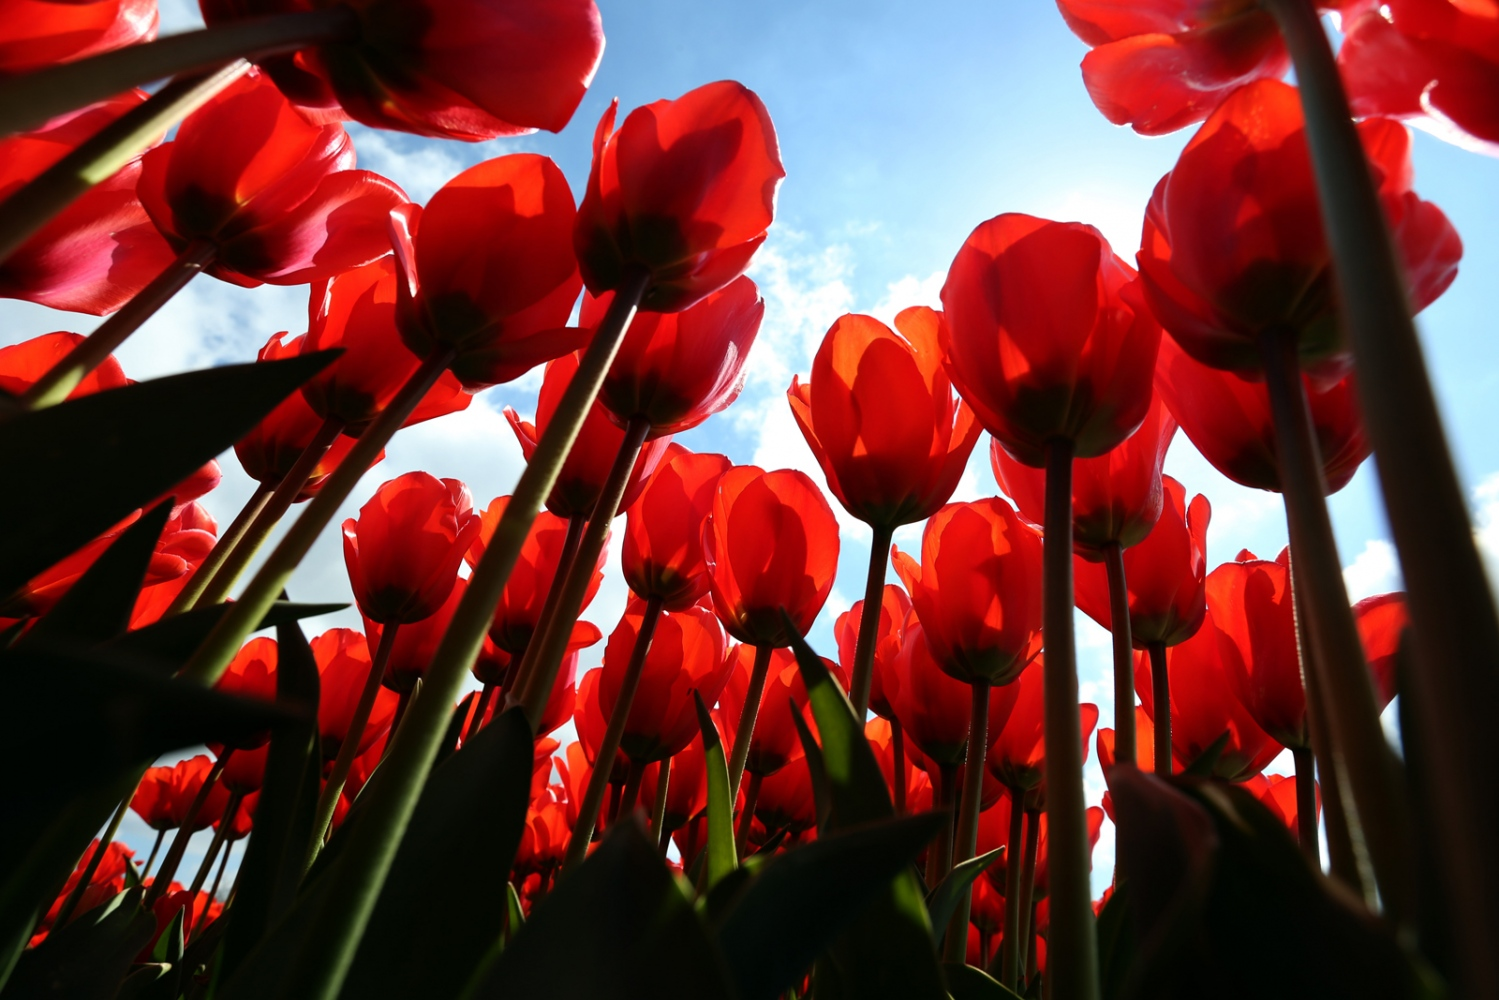 Of the 1,700 varieties of tulips, about 80 percent come from Holland, which exports more than $1 Billion worth of tulips per year.